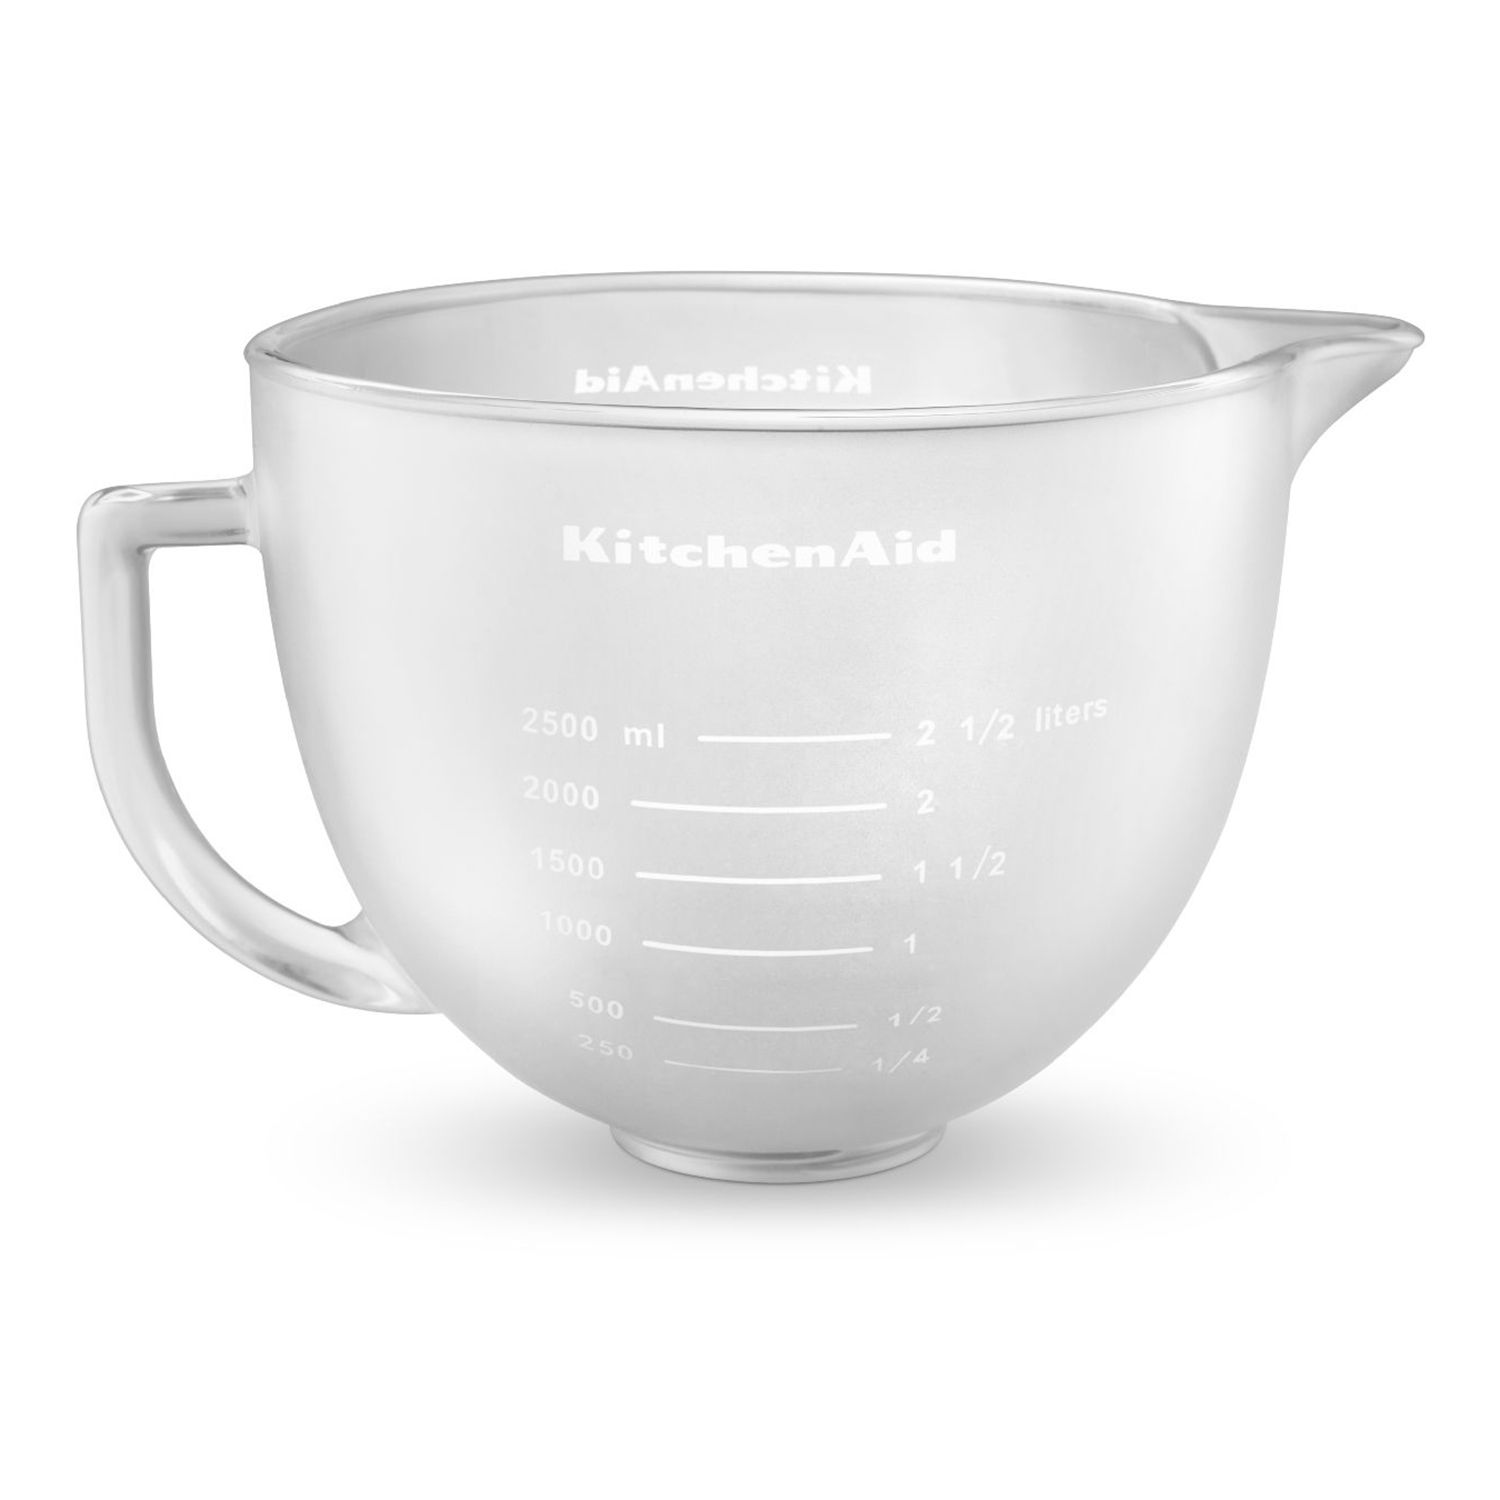 kitchenaid frosted covered glass bowl for 5qt bowllift stand mixers